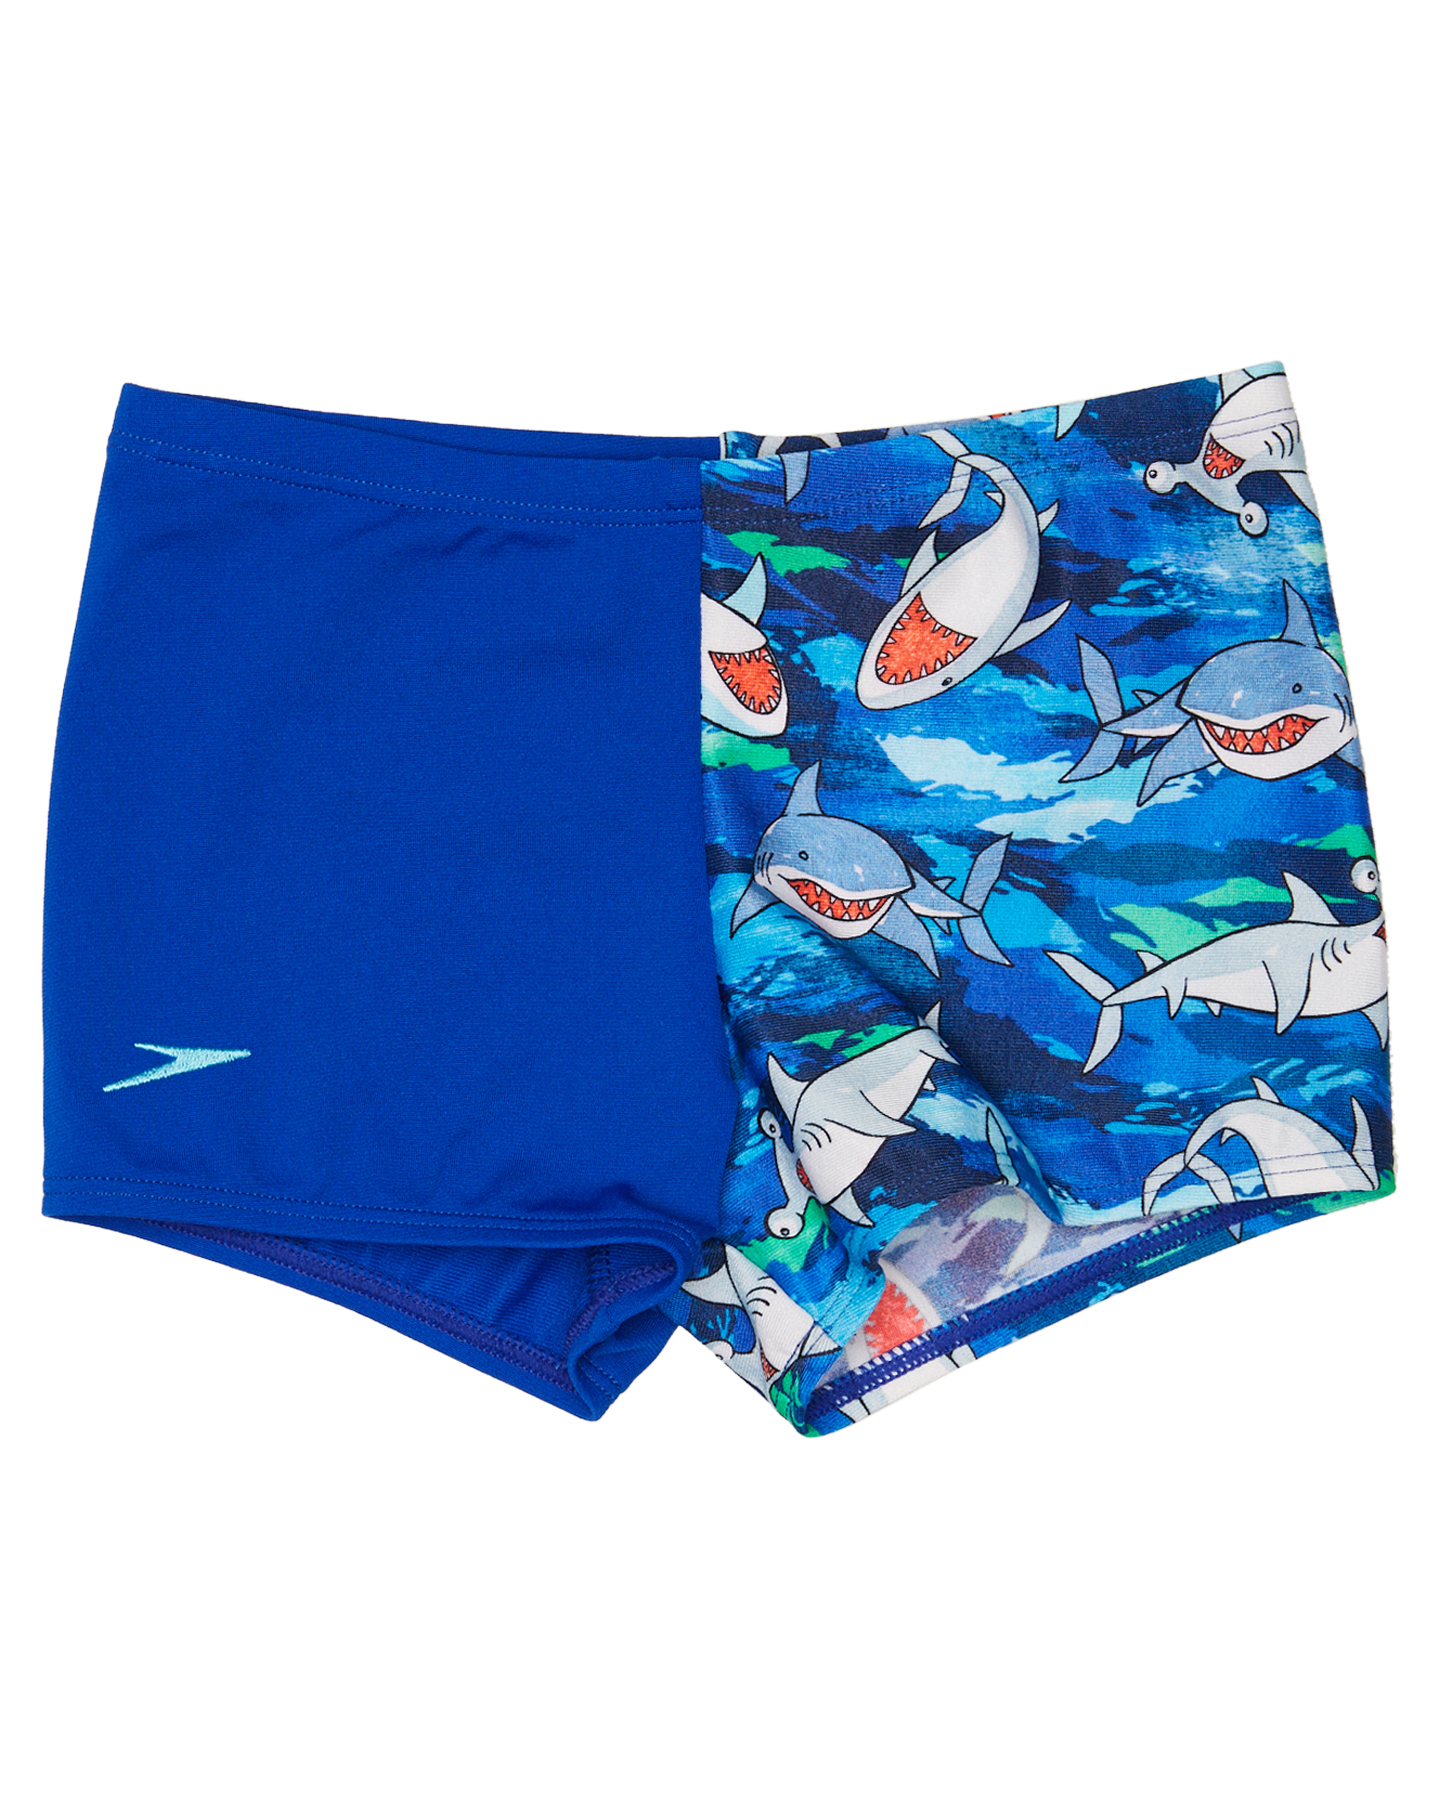 3fc3db2157b13 Speedo Tots Boys Camo Shark Aquashort Camo Shark Swimwear Size 6 ...